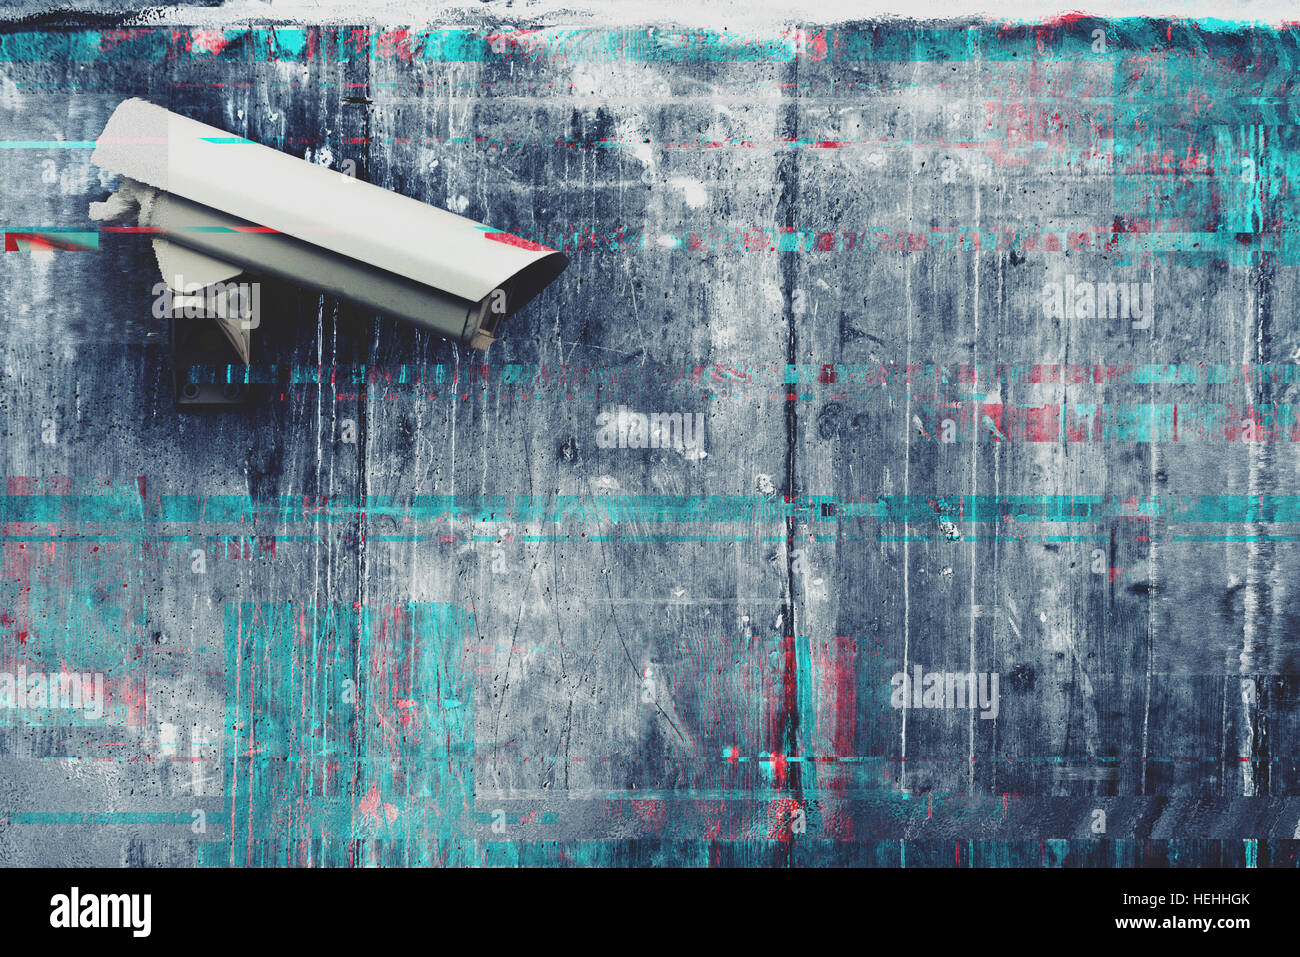 CCTV security and surveillance camera with digital glitch effect - Stock Image